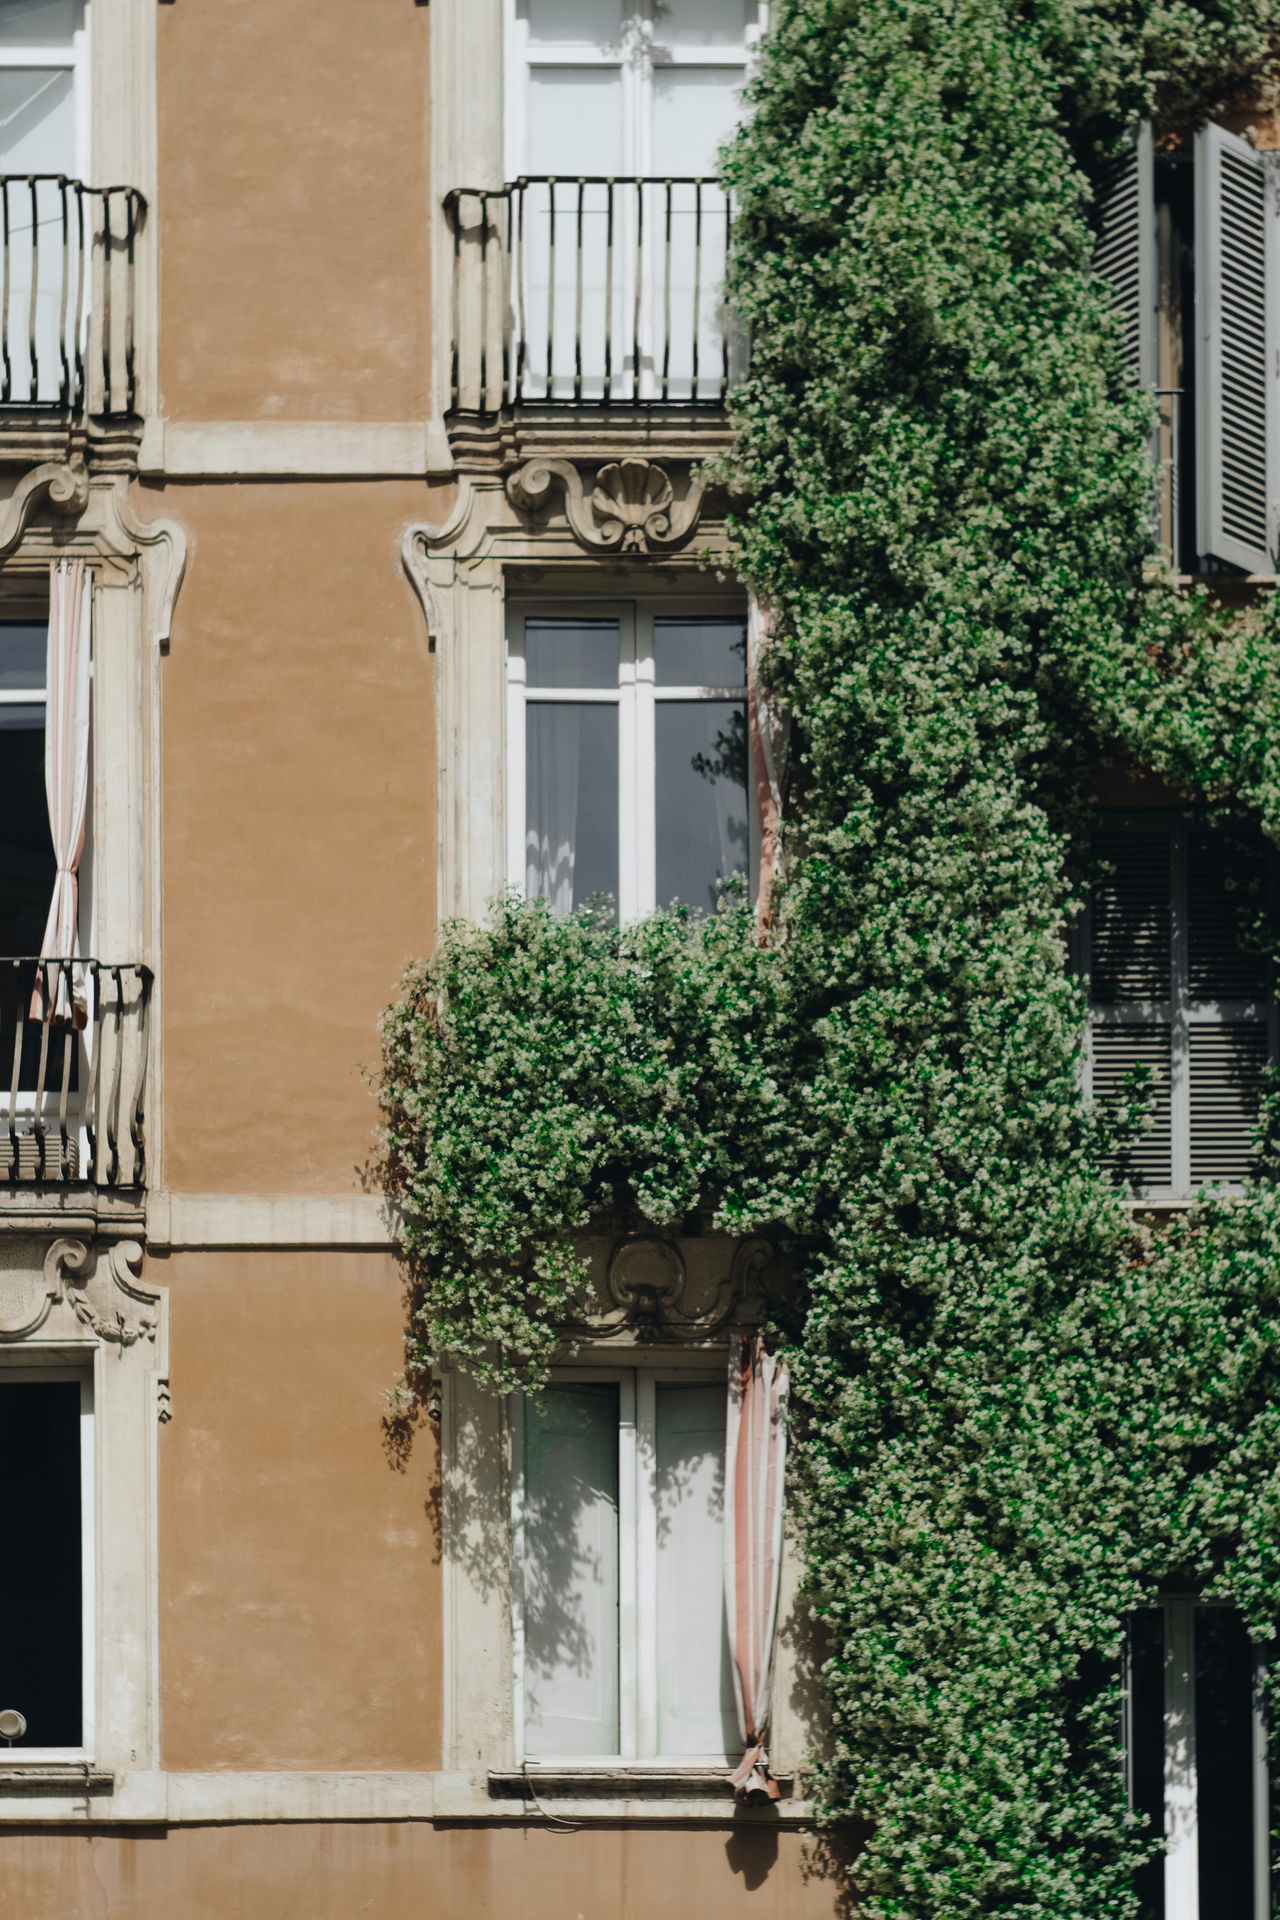 Architecture Architecture Building Exterior Built Structure Day Green Plant Home Italy Living Living Style Nature Organized Outdoors Pastel Colors Plant Rome South Travel Destinations Travel Photography Tree Vacations Vertical Window Windows Windows_aroundtheworld